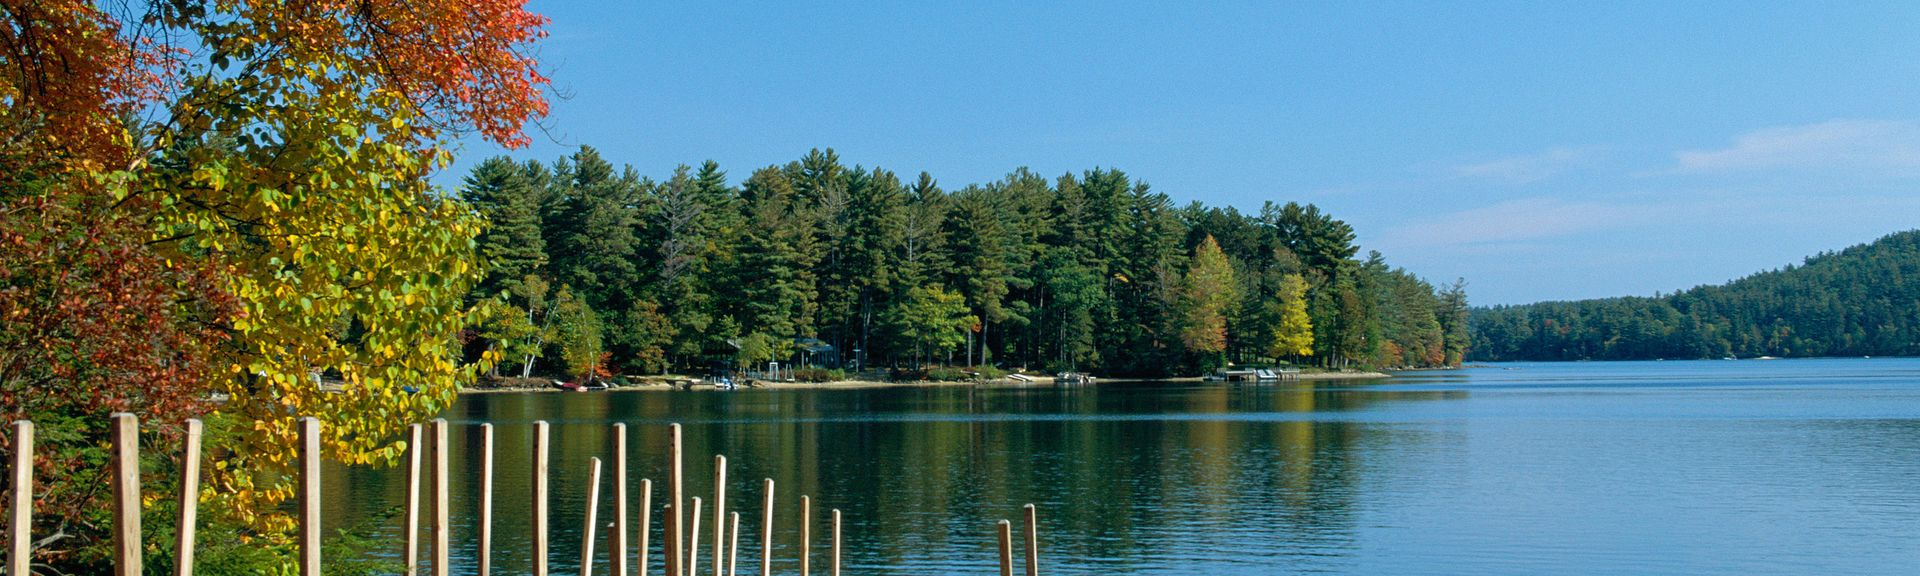 Squam Lake, Moultonborough, New Hampshire, United States of America